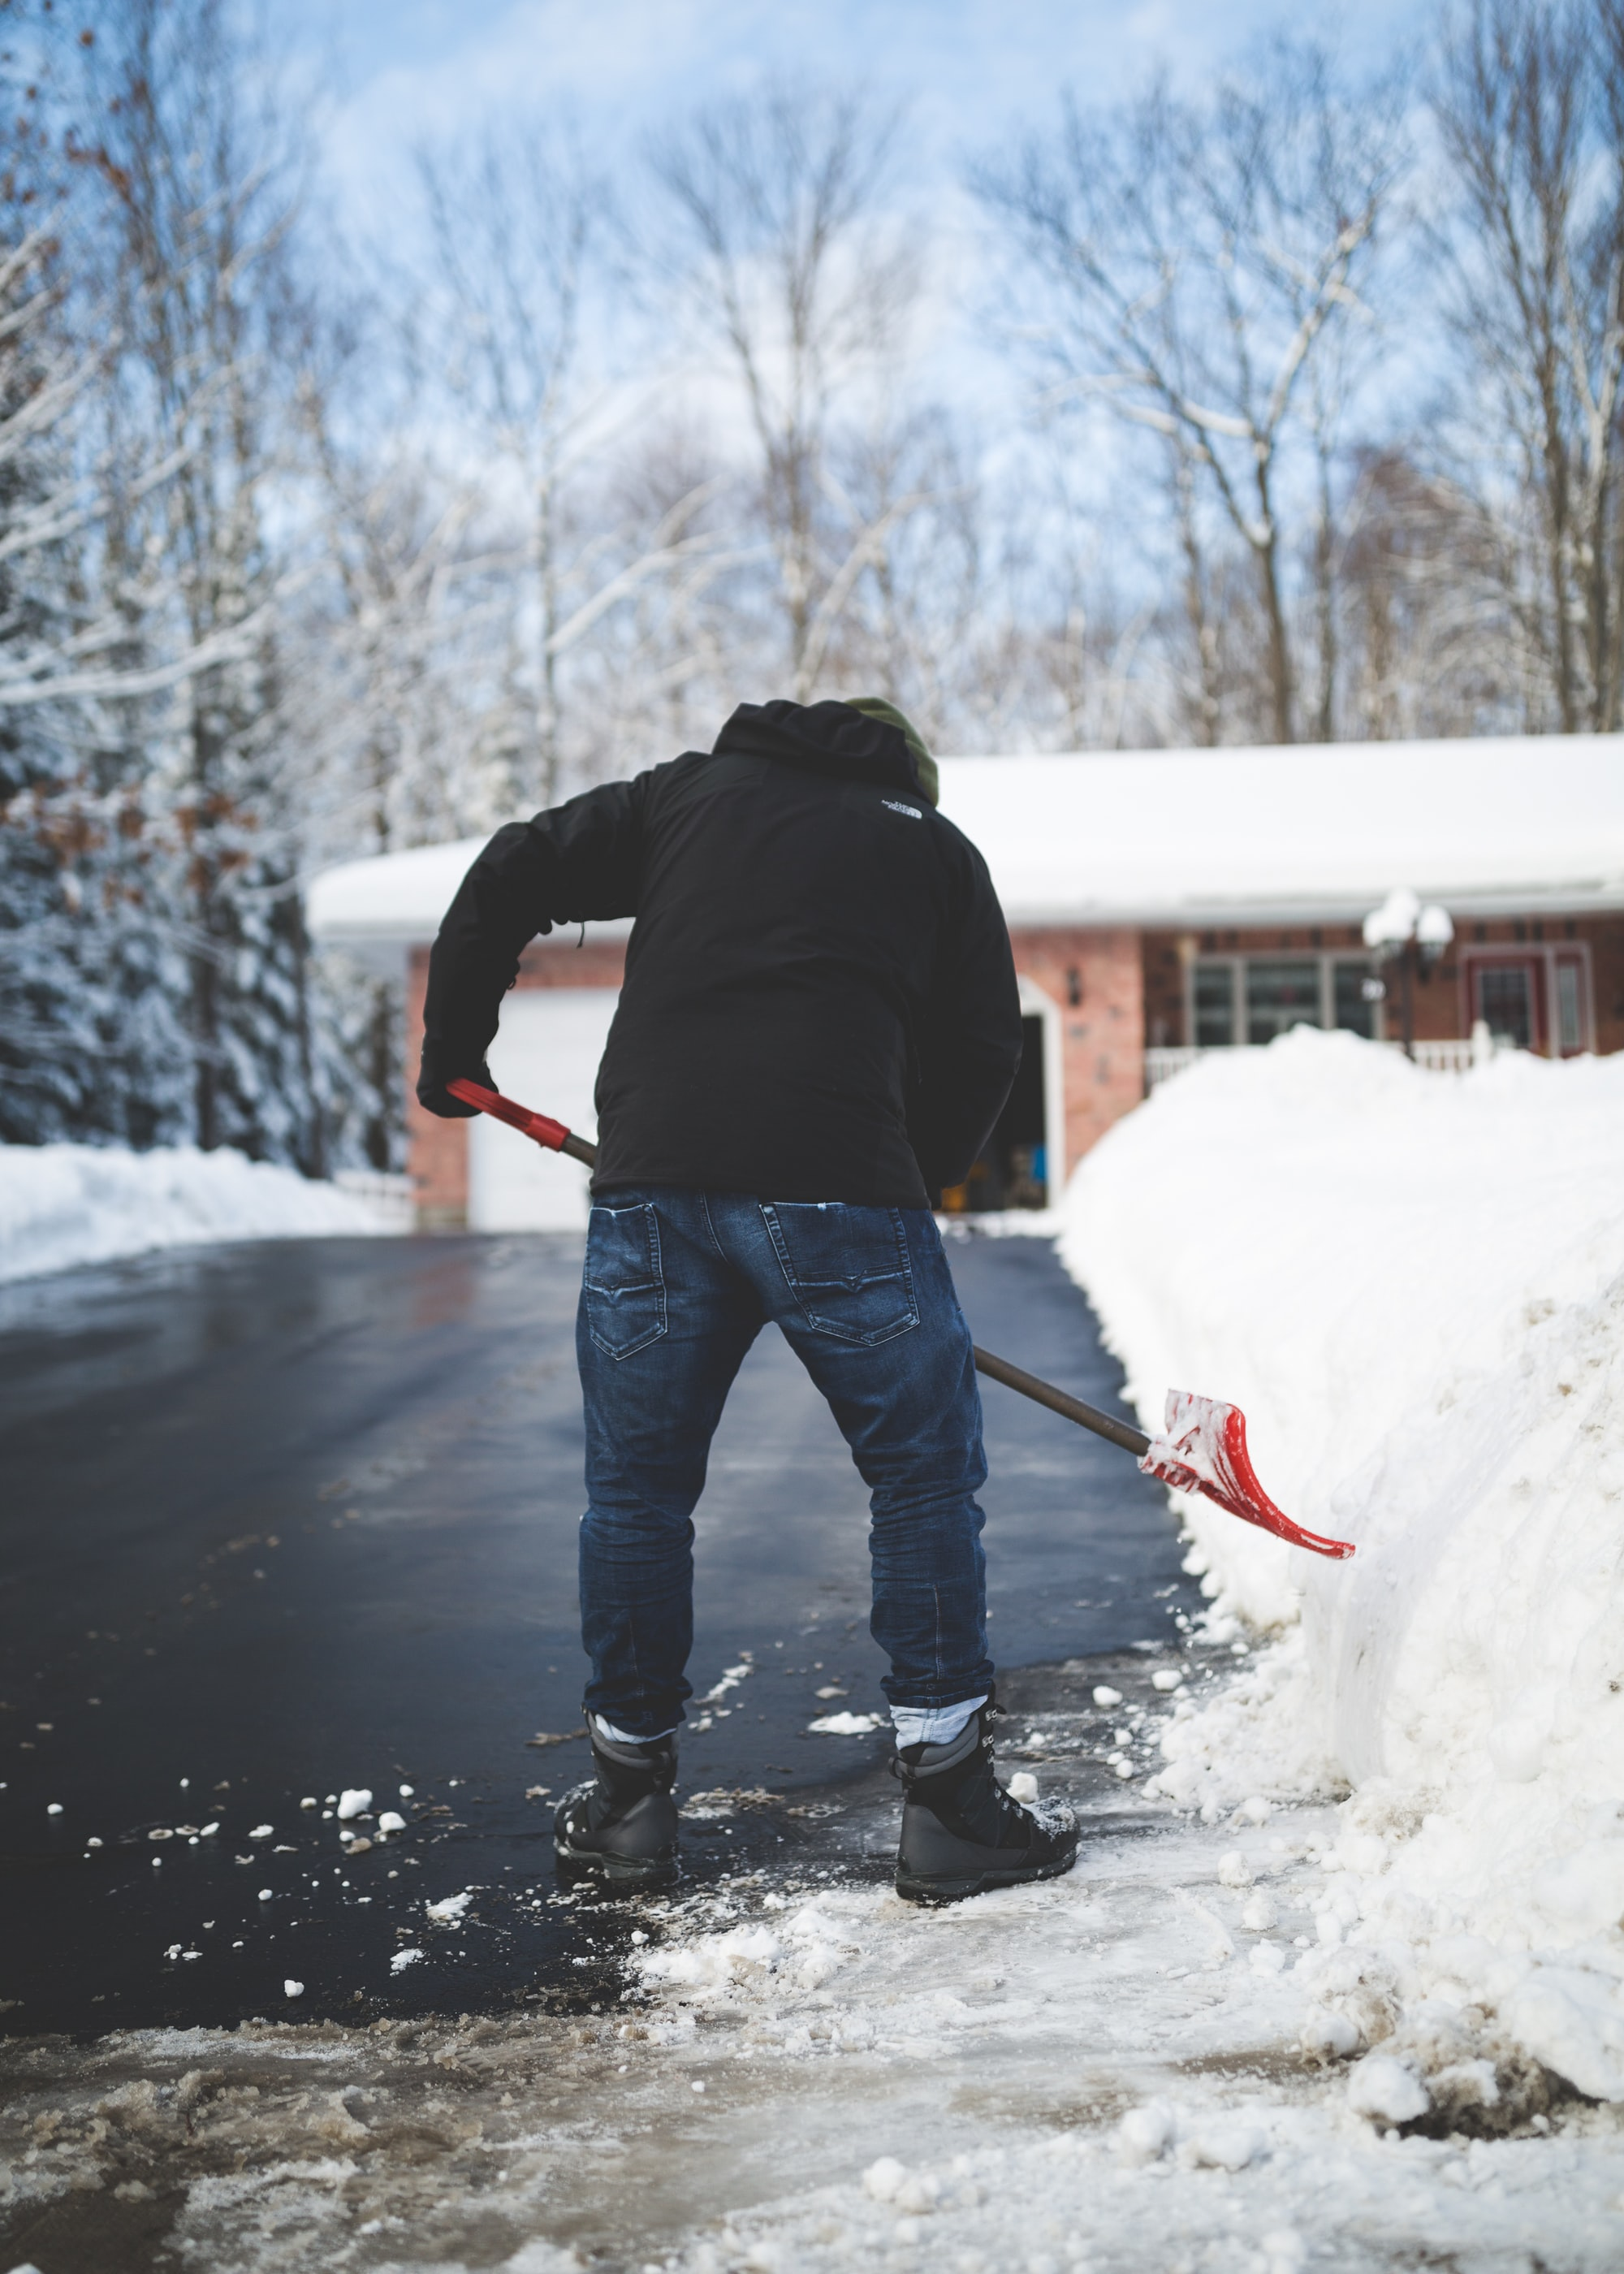 Snow Removal Policies